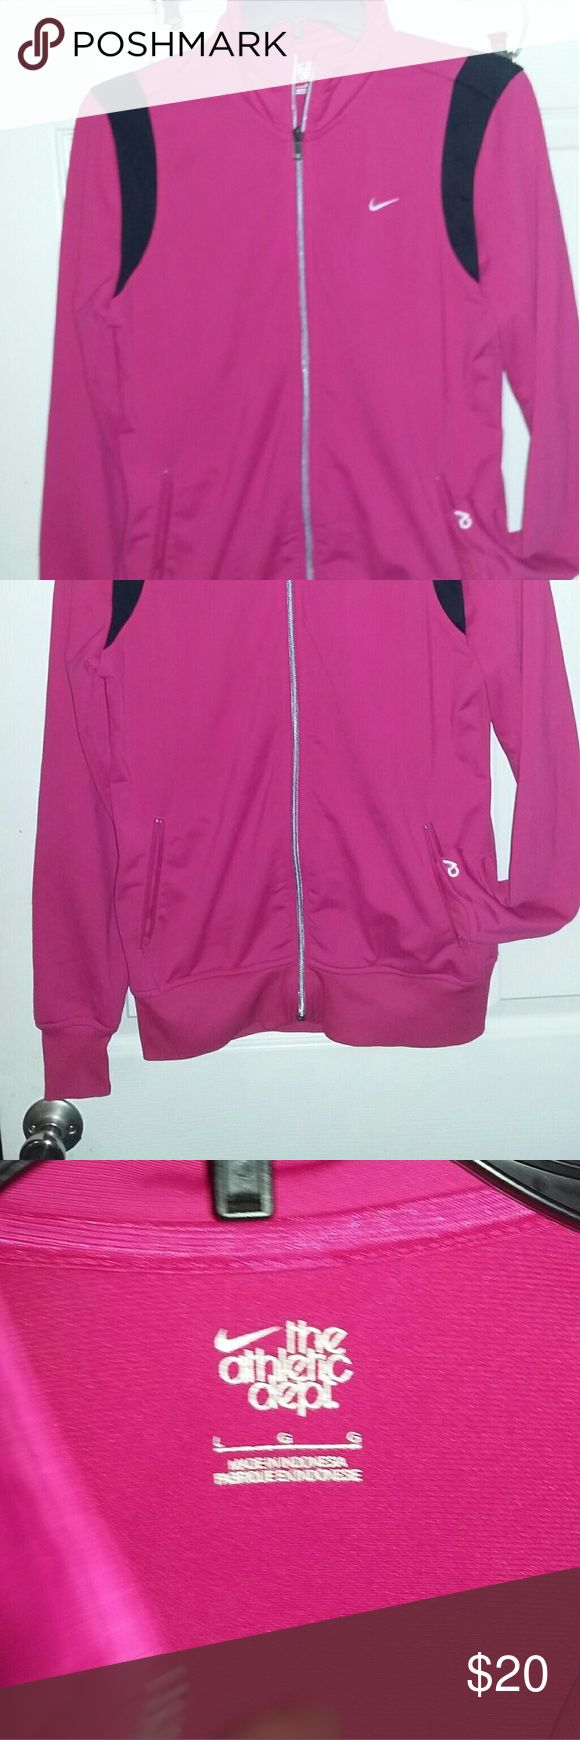 Nike zip up jacket pink and black large Womens pink and black Nike zip up jacket in good condition. Size is large but fits more like a medium Nike Jackets & Coats